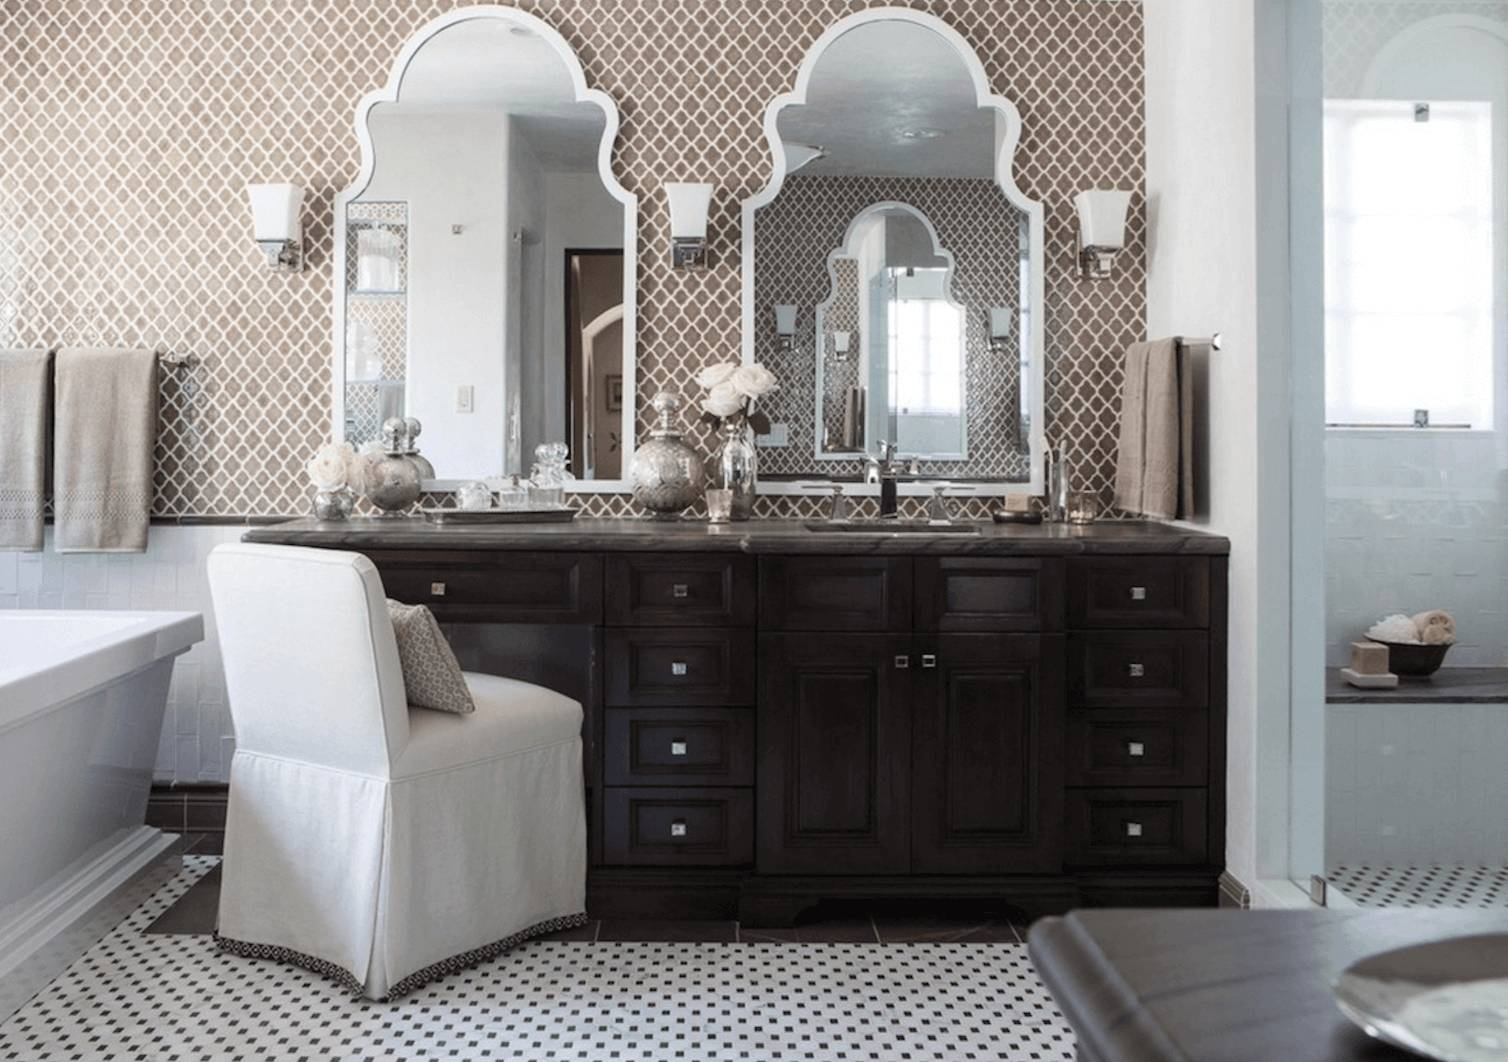 Bathroom Mirror Ideas To Reflect Your Style Freshome Ideas 21 within Vintage Bathroom Mirrors (Image 5 of 15)